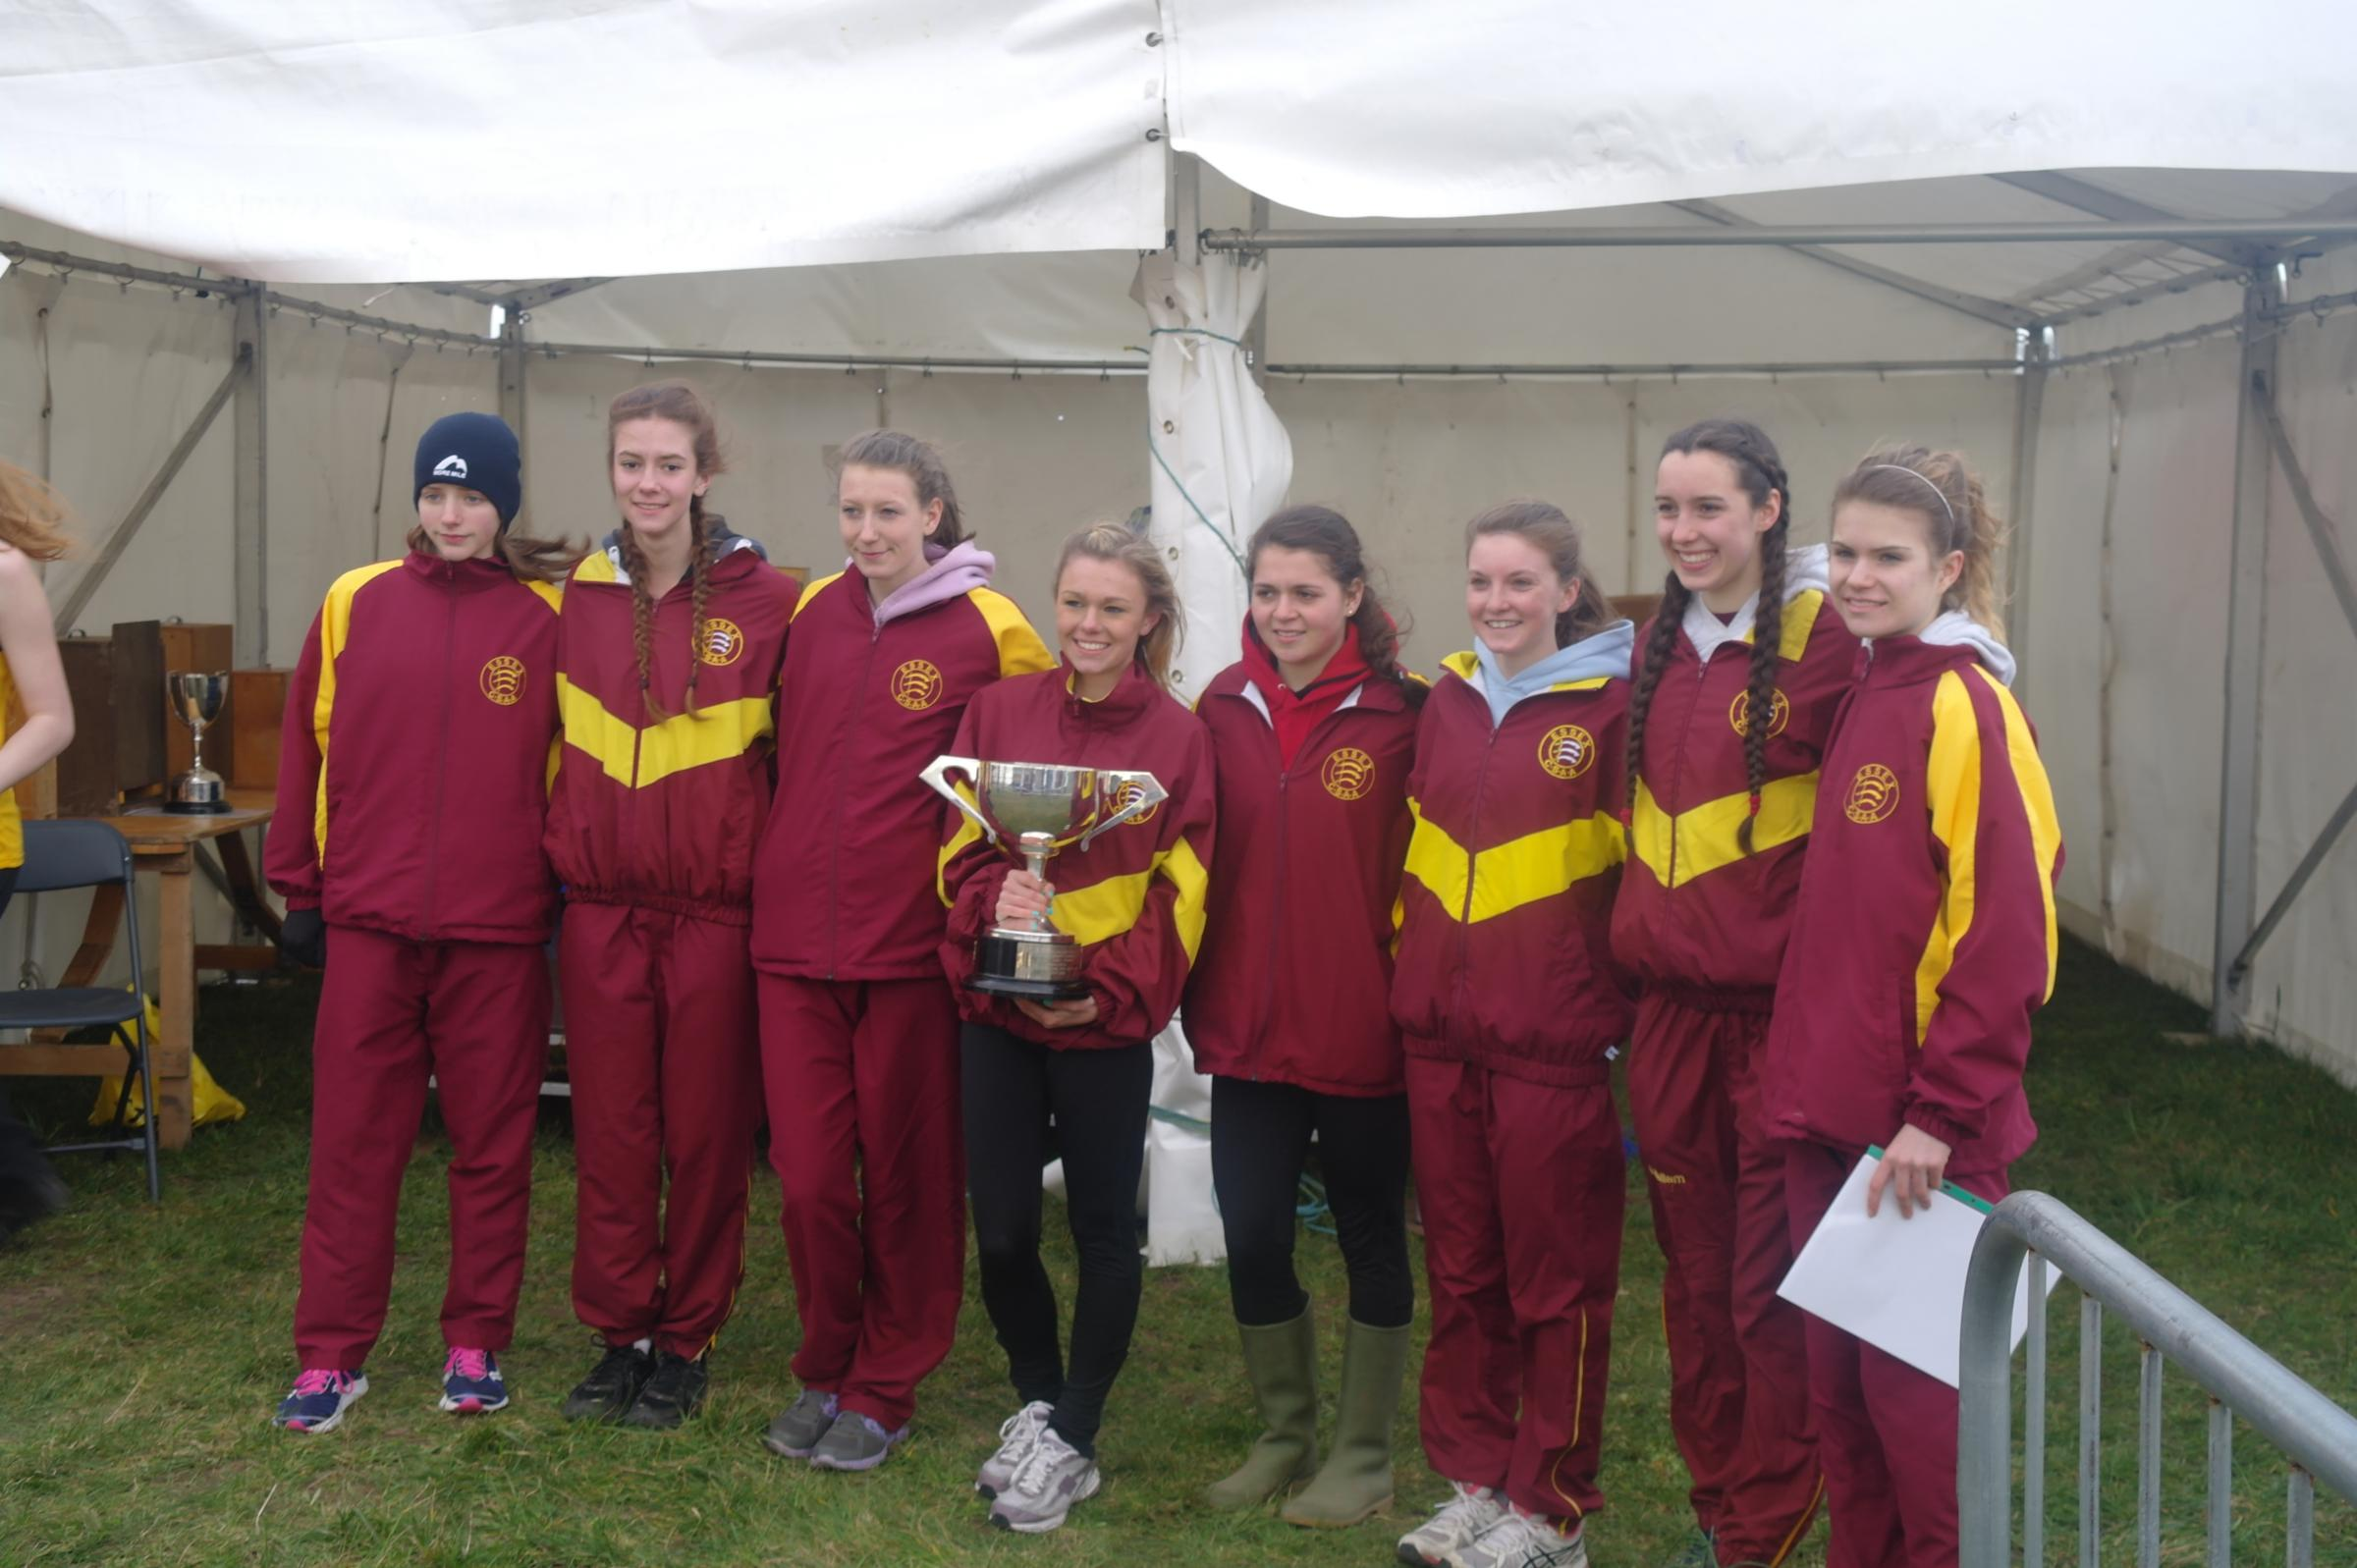 The Essex senior girls team